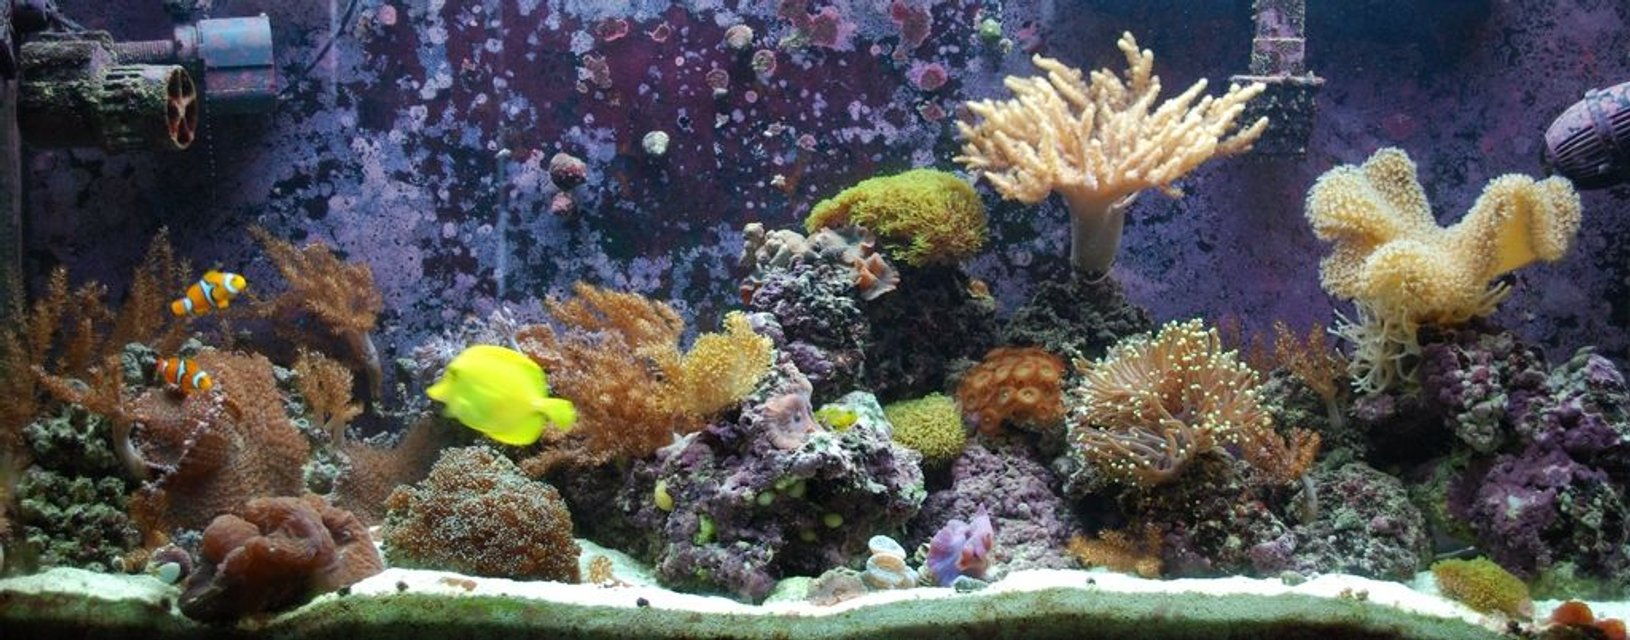 Rated #101: 55 Gallons Reef Tank - My newest FTS of my softy and LPS dominated reef tank